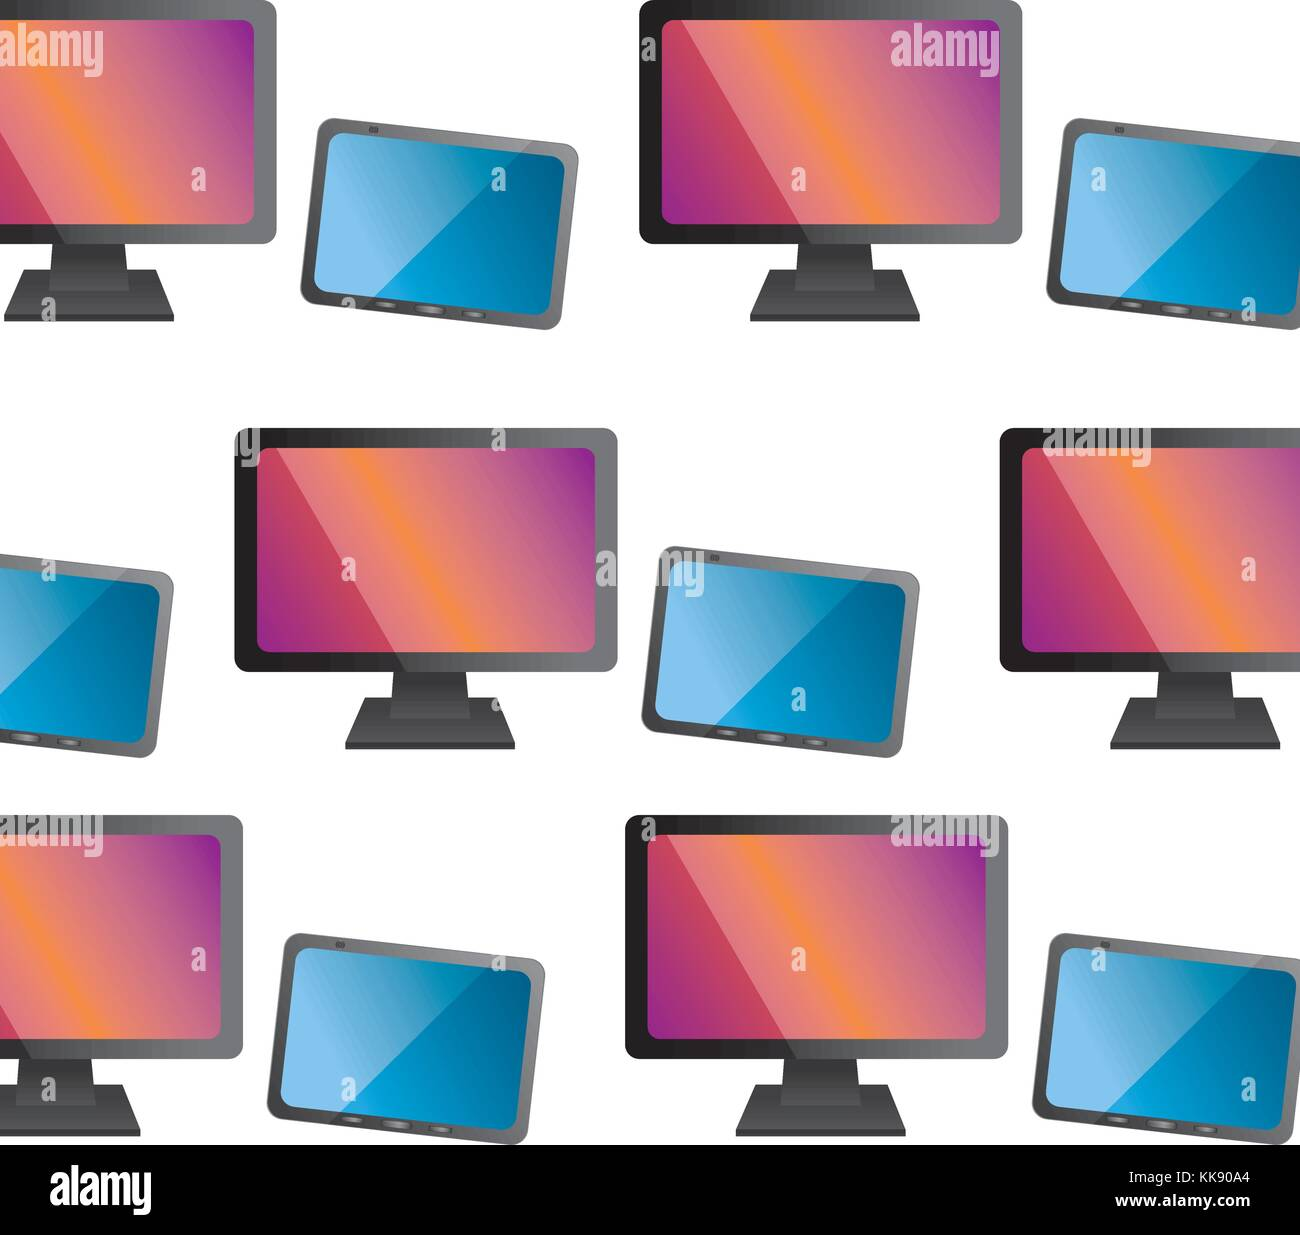 computer monitor icon image  Stock Vector